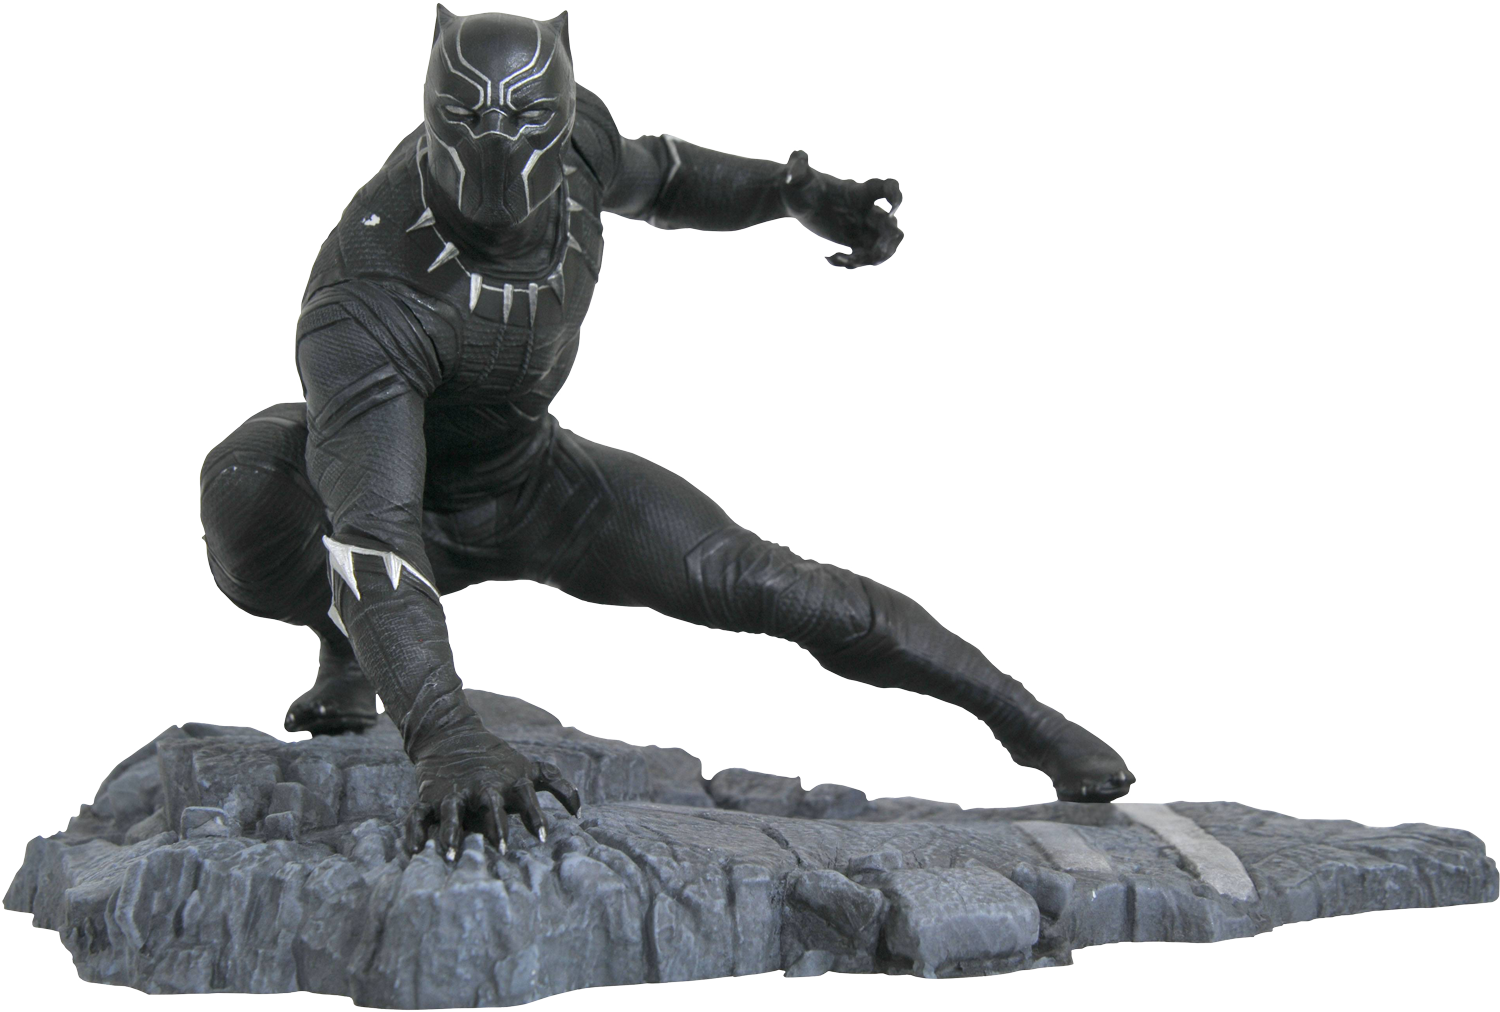 marvel-gallery-black-panther-pvc-statue-popcultcha-new.png (1500×1012) |  Statues | Pinterest - Black Panther PNG